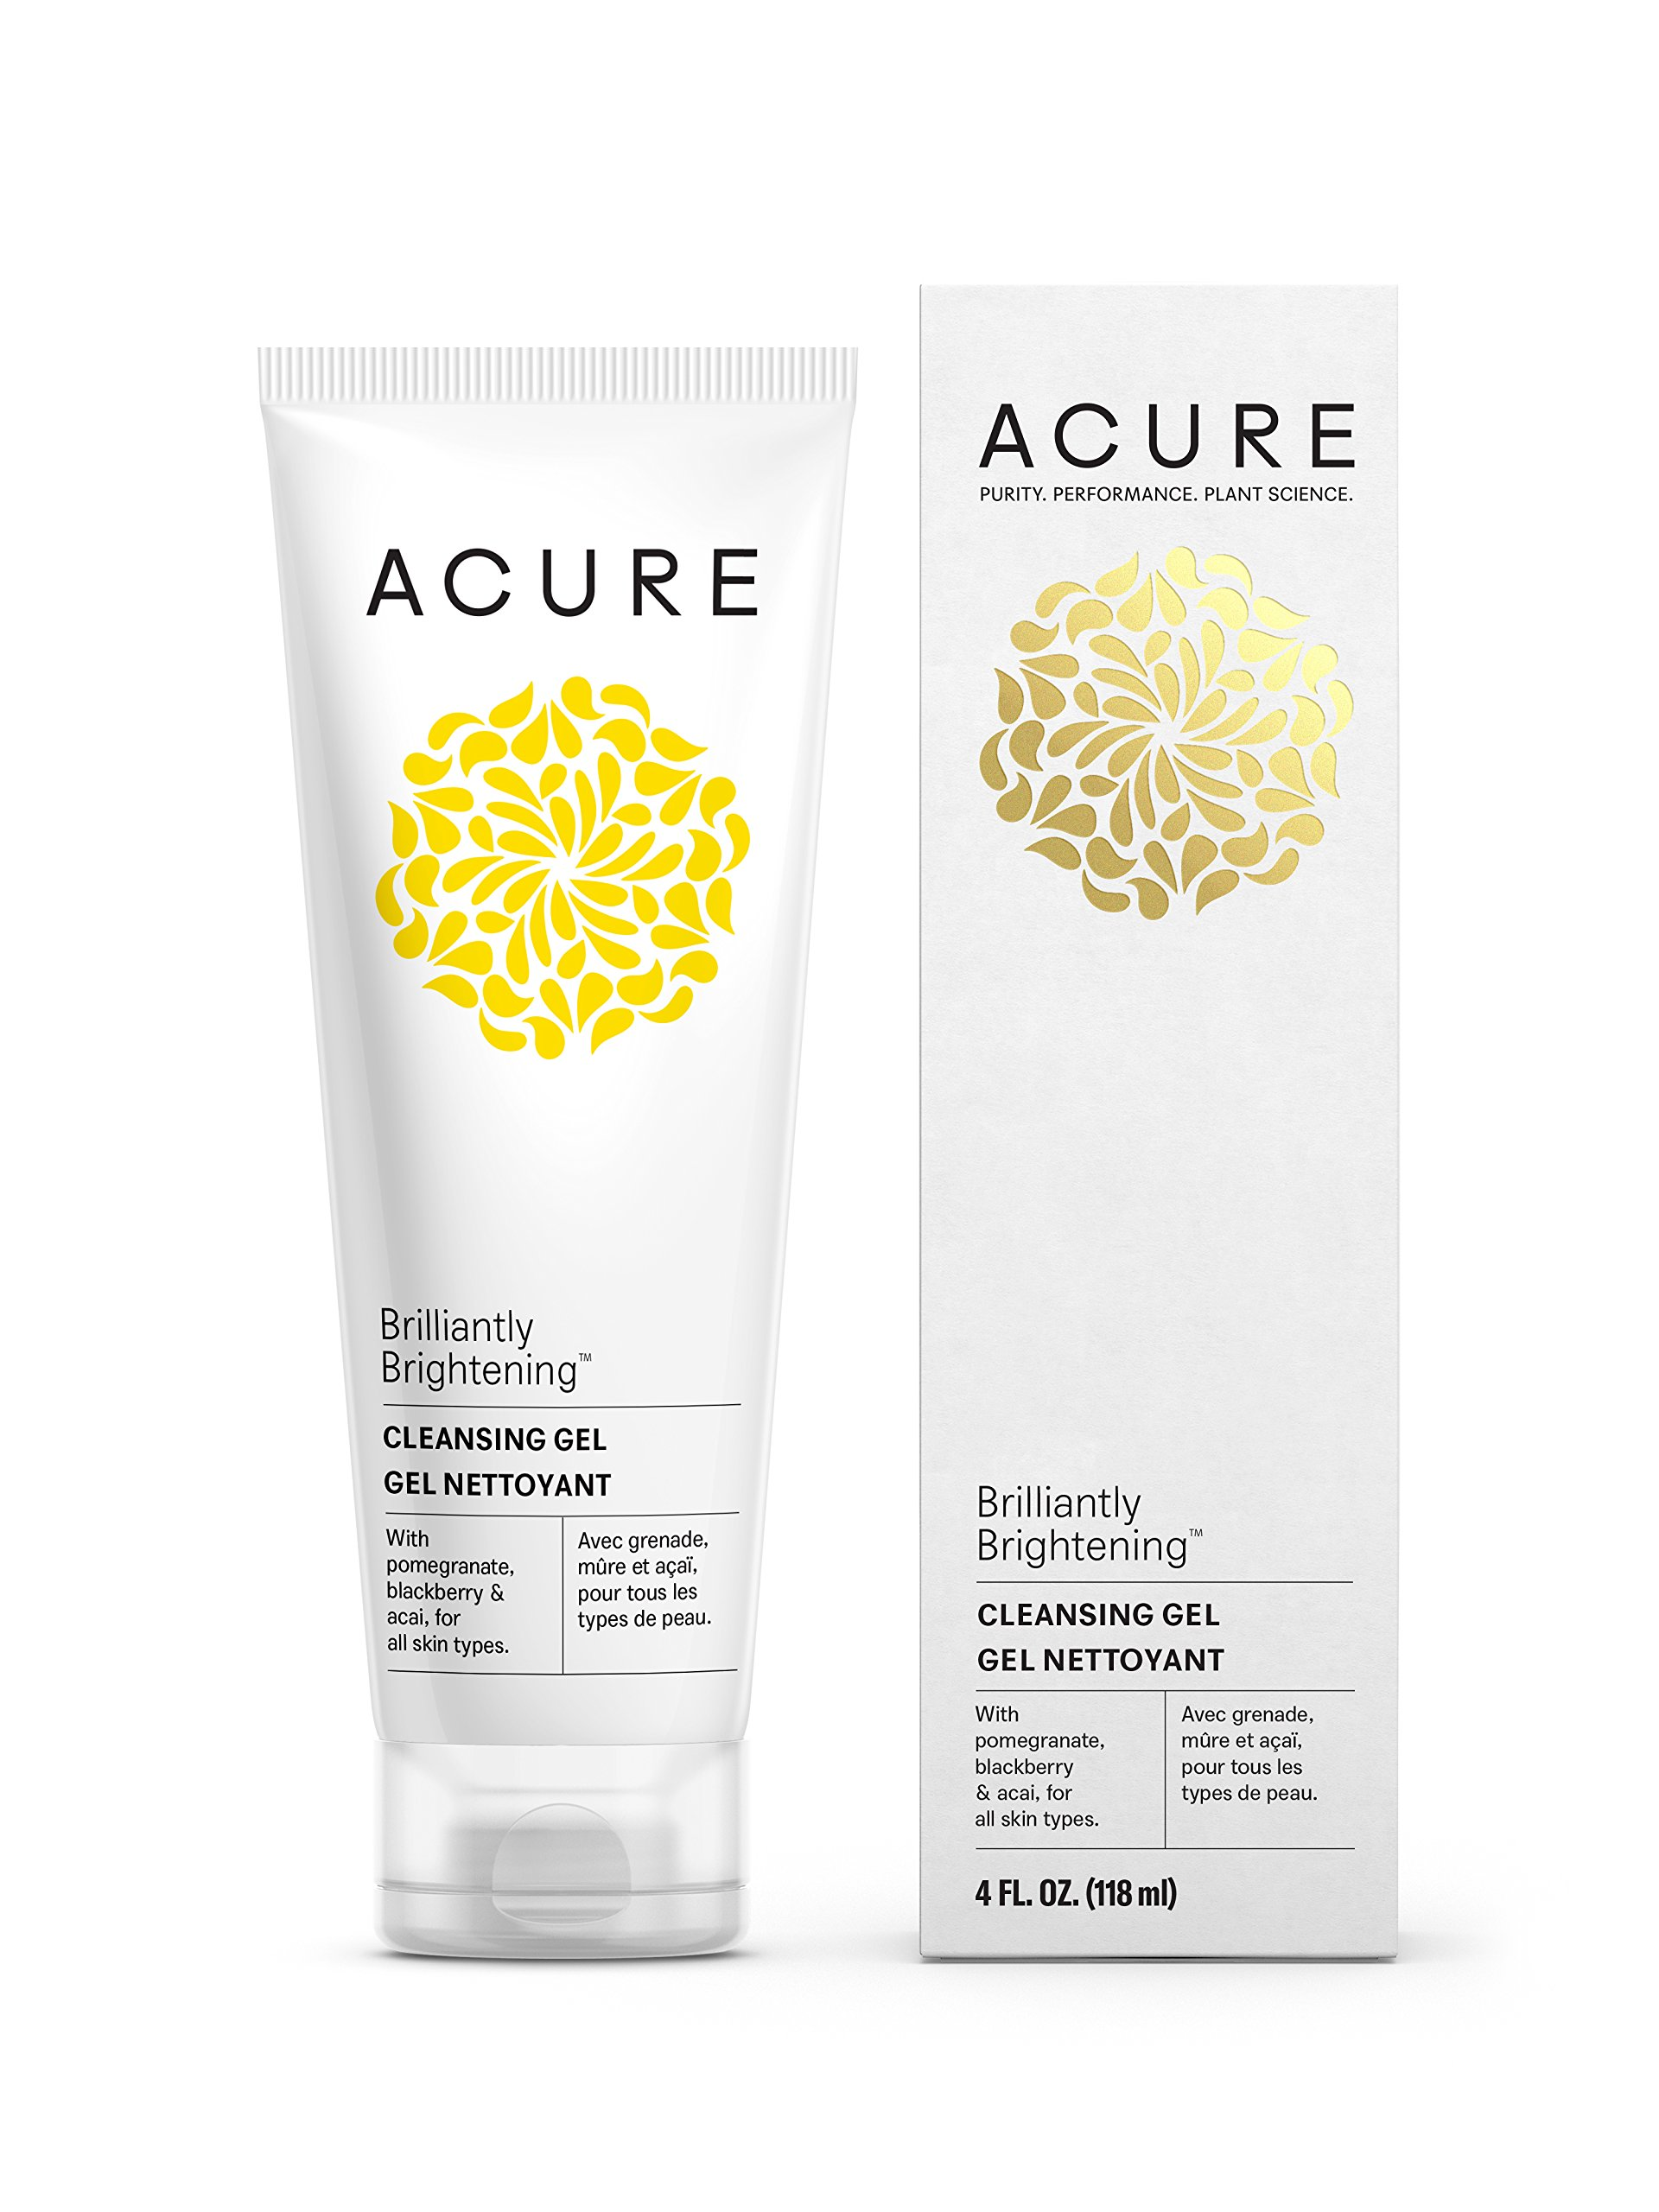 Acure Brilliantly Brightening Cleansing Gel, 4 Fluid Ounces